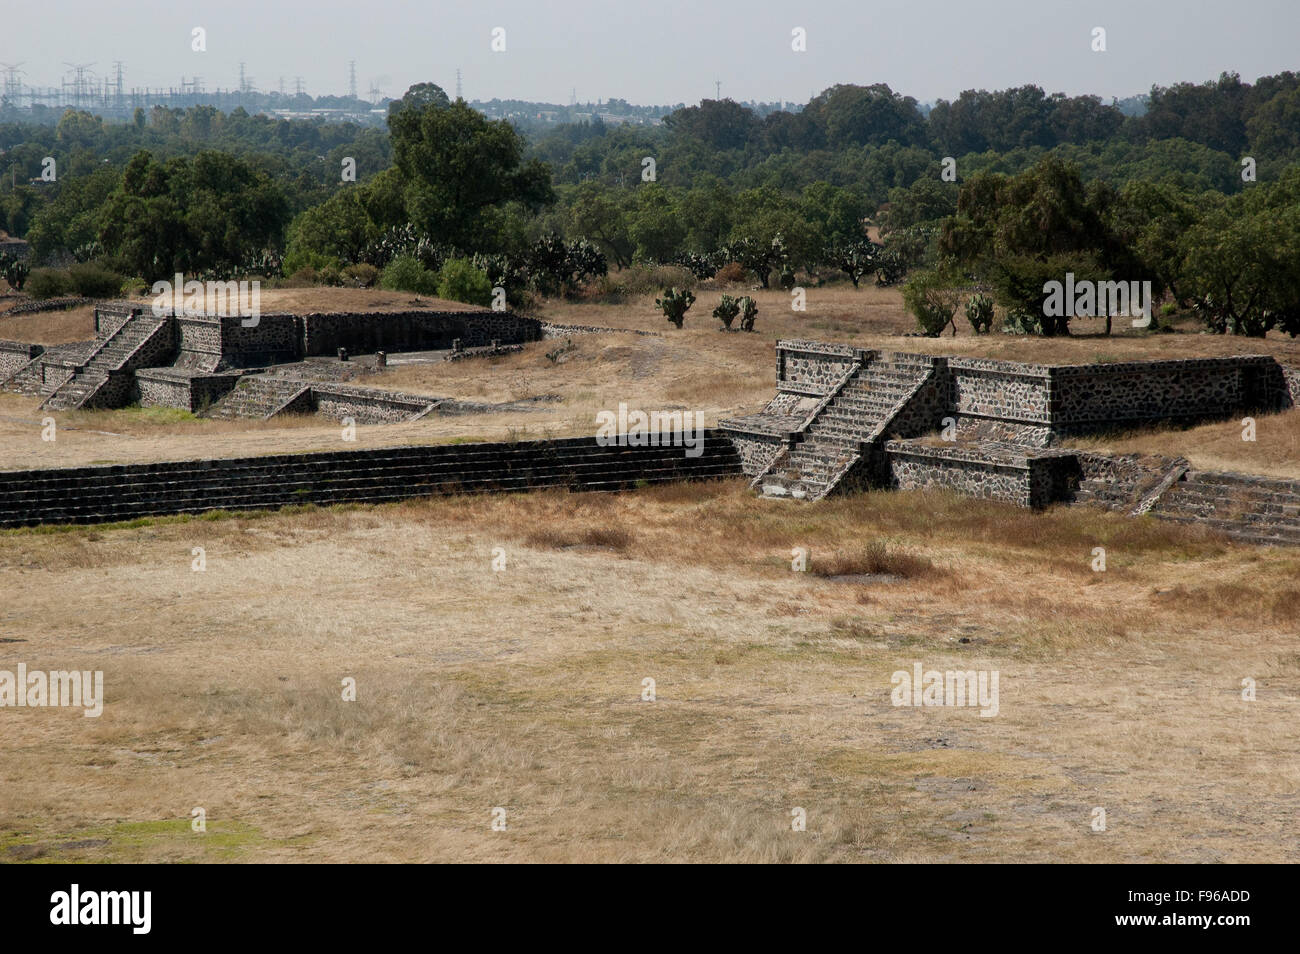 Pyramids of Teotihuacan, Mexico. Symbol of the pre-colombian America - Stock Image